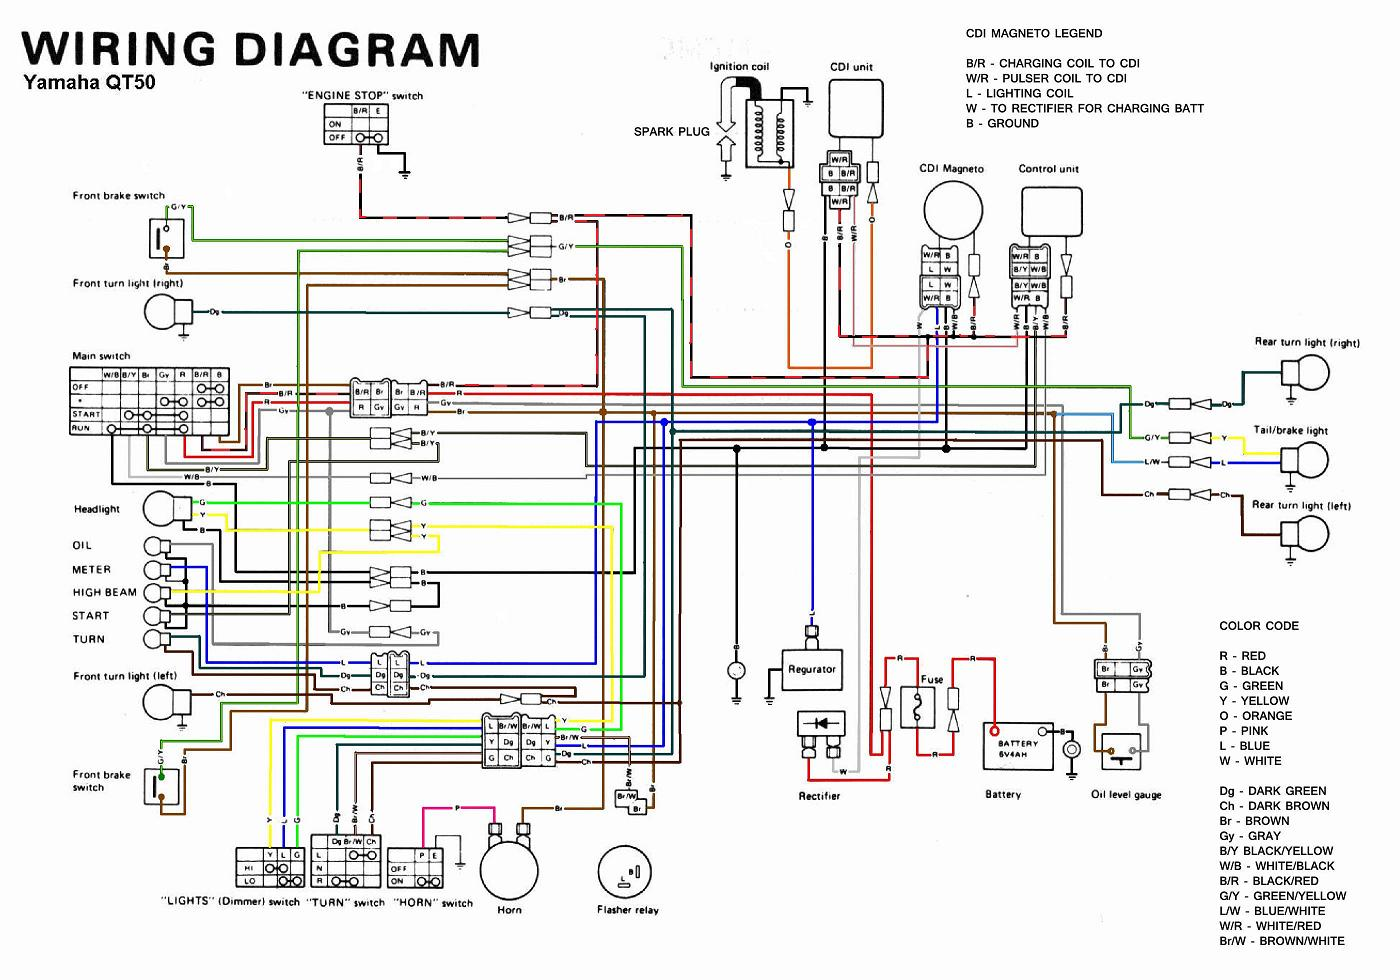 Yamaha QT50 Wiring Diagram yamaha qt50 wiring diagram yamaha qt50 luvin and other nopeds wiring diagram for dummies at nearapp.co